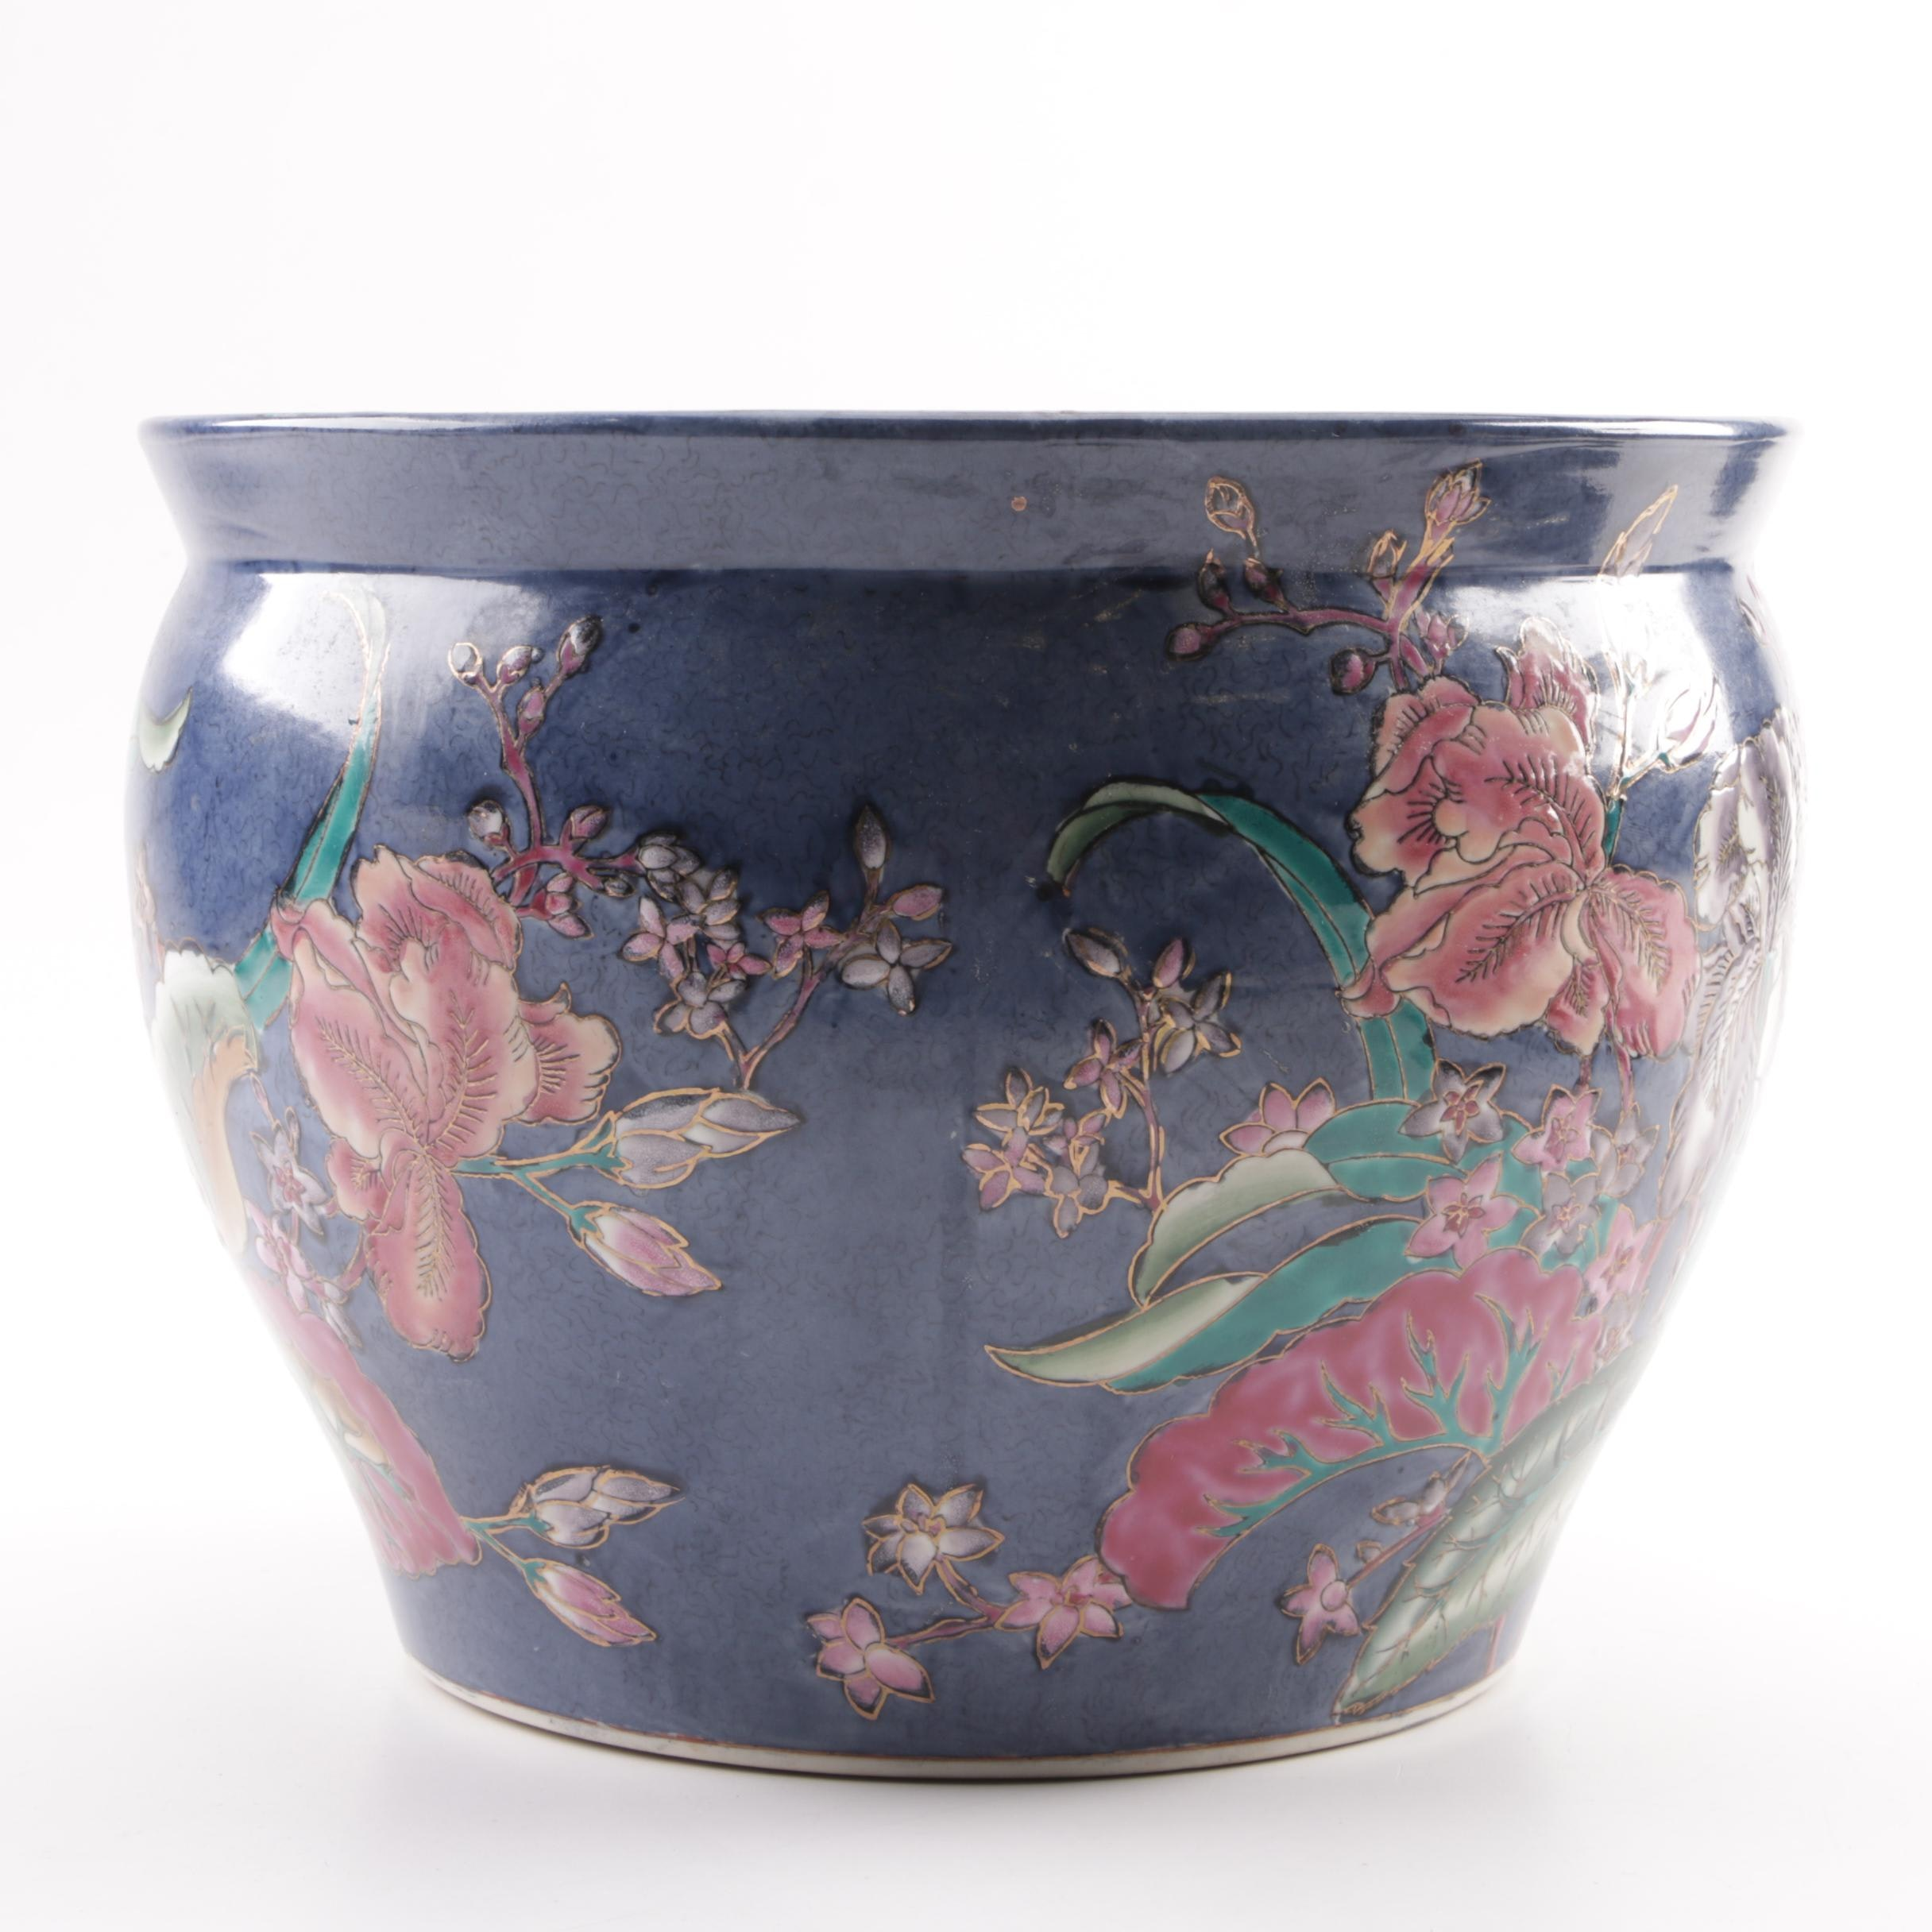 Chinese Hand-Painted Floral Themed Fish Bowl Ceramic Planter